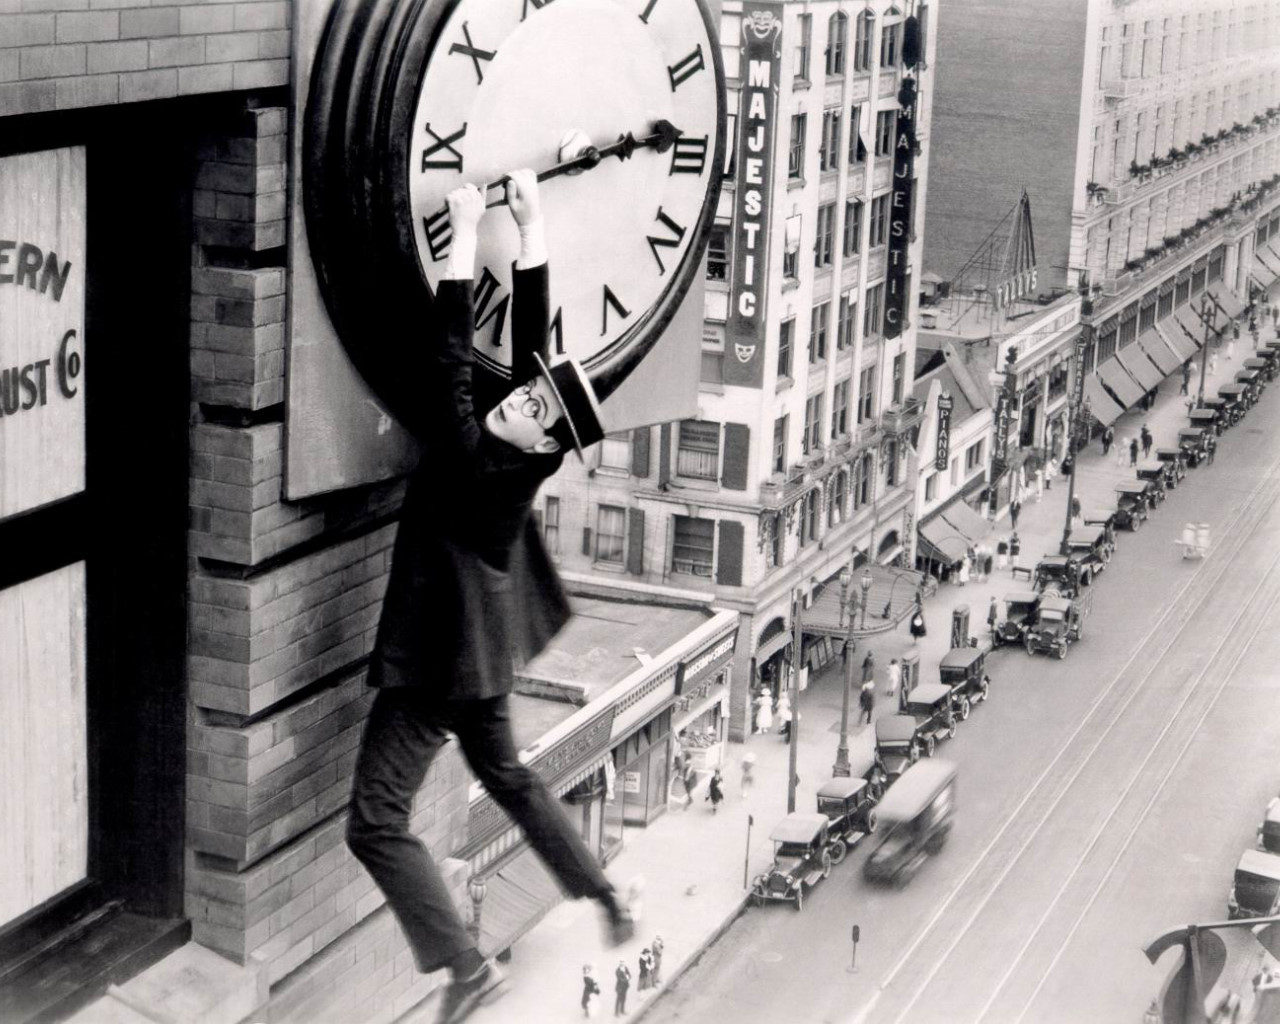 harold-lloyd-safety-last-clock1.jpg